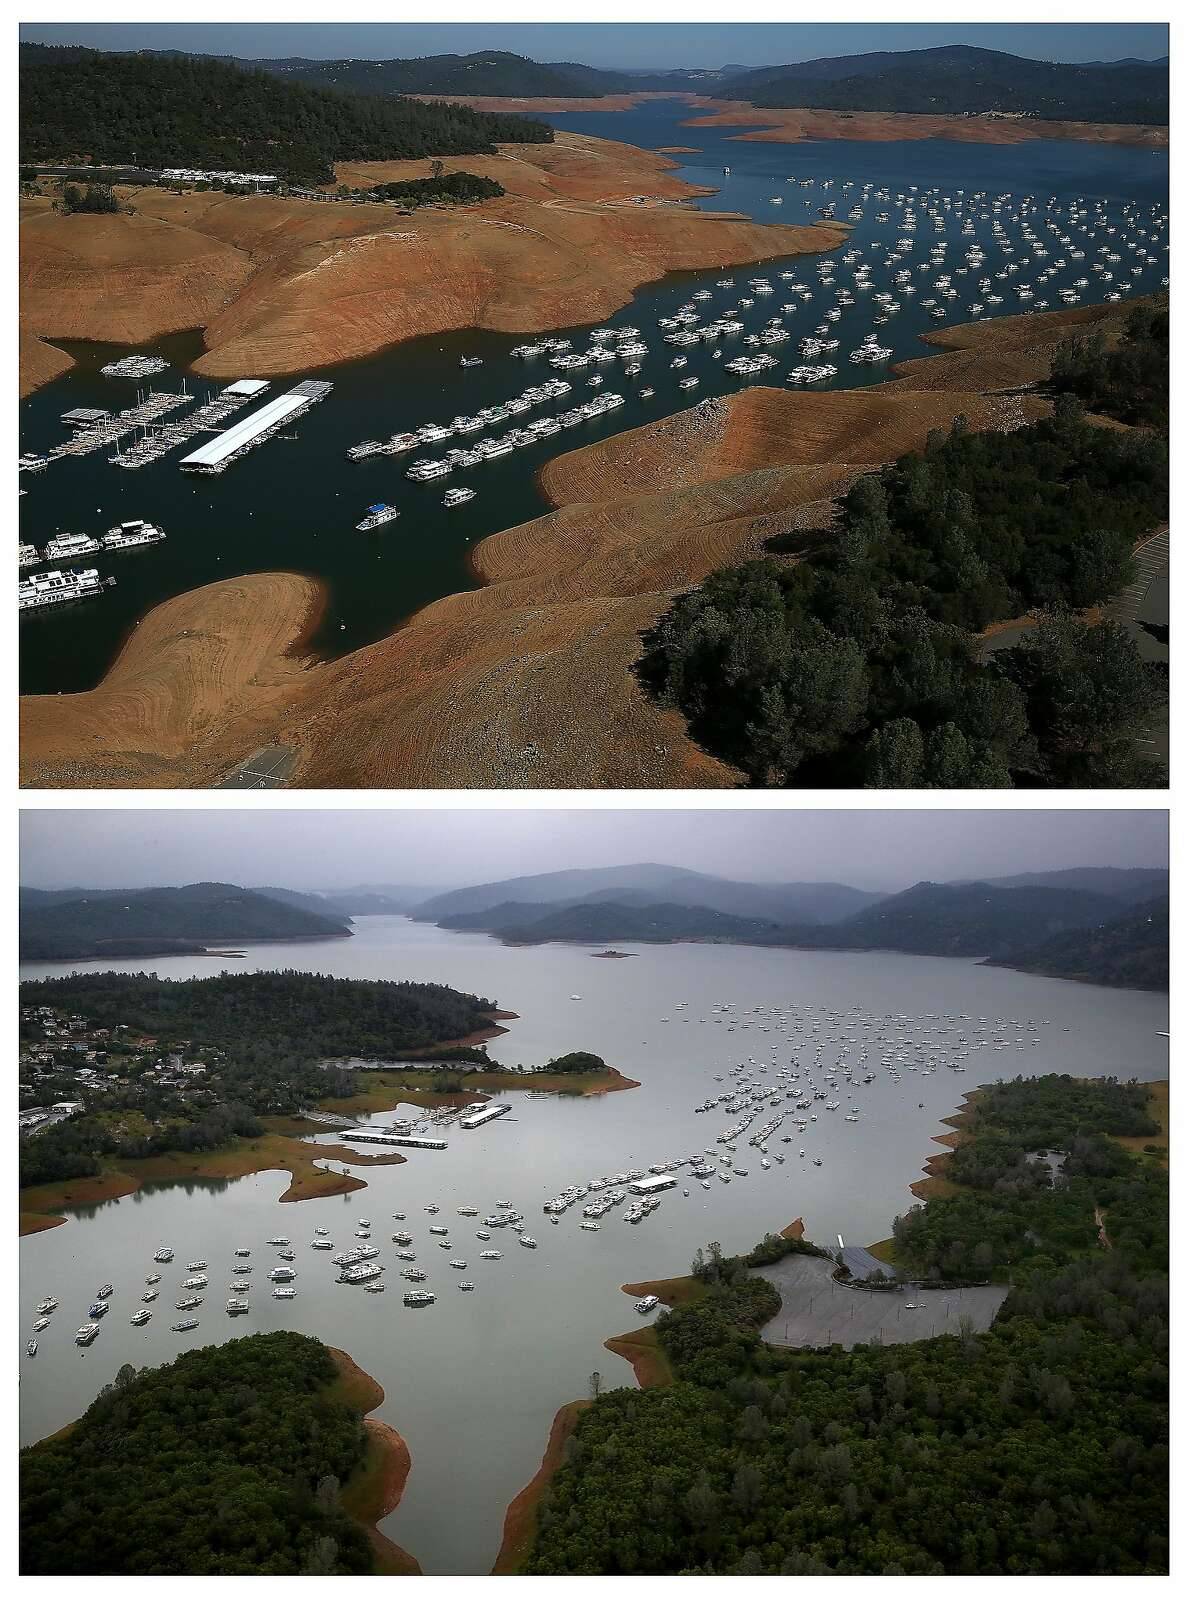 Getty photographer Justin Sullivan shot a series of photos showing how the rainy winter has affected Northern California lakes, reservoirs and the landscape. He tried to frame each shot as closely as possible to the one he took of the same subject two or three years earlier. Shown here is Bidwell Marina at Lake Oroville in Oroville, Calif., on August 19, 2014 (top) and on April 11, 2017.